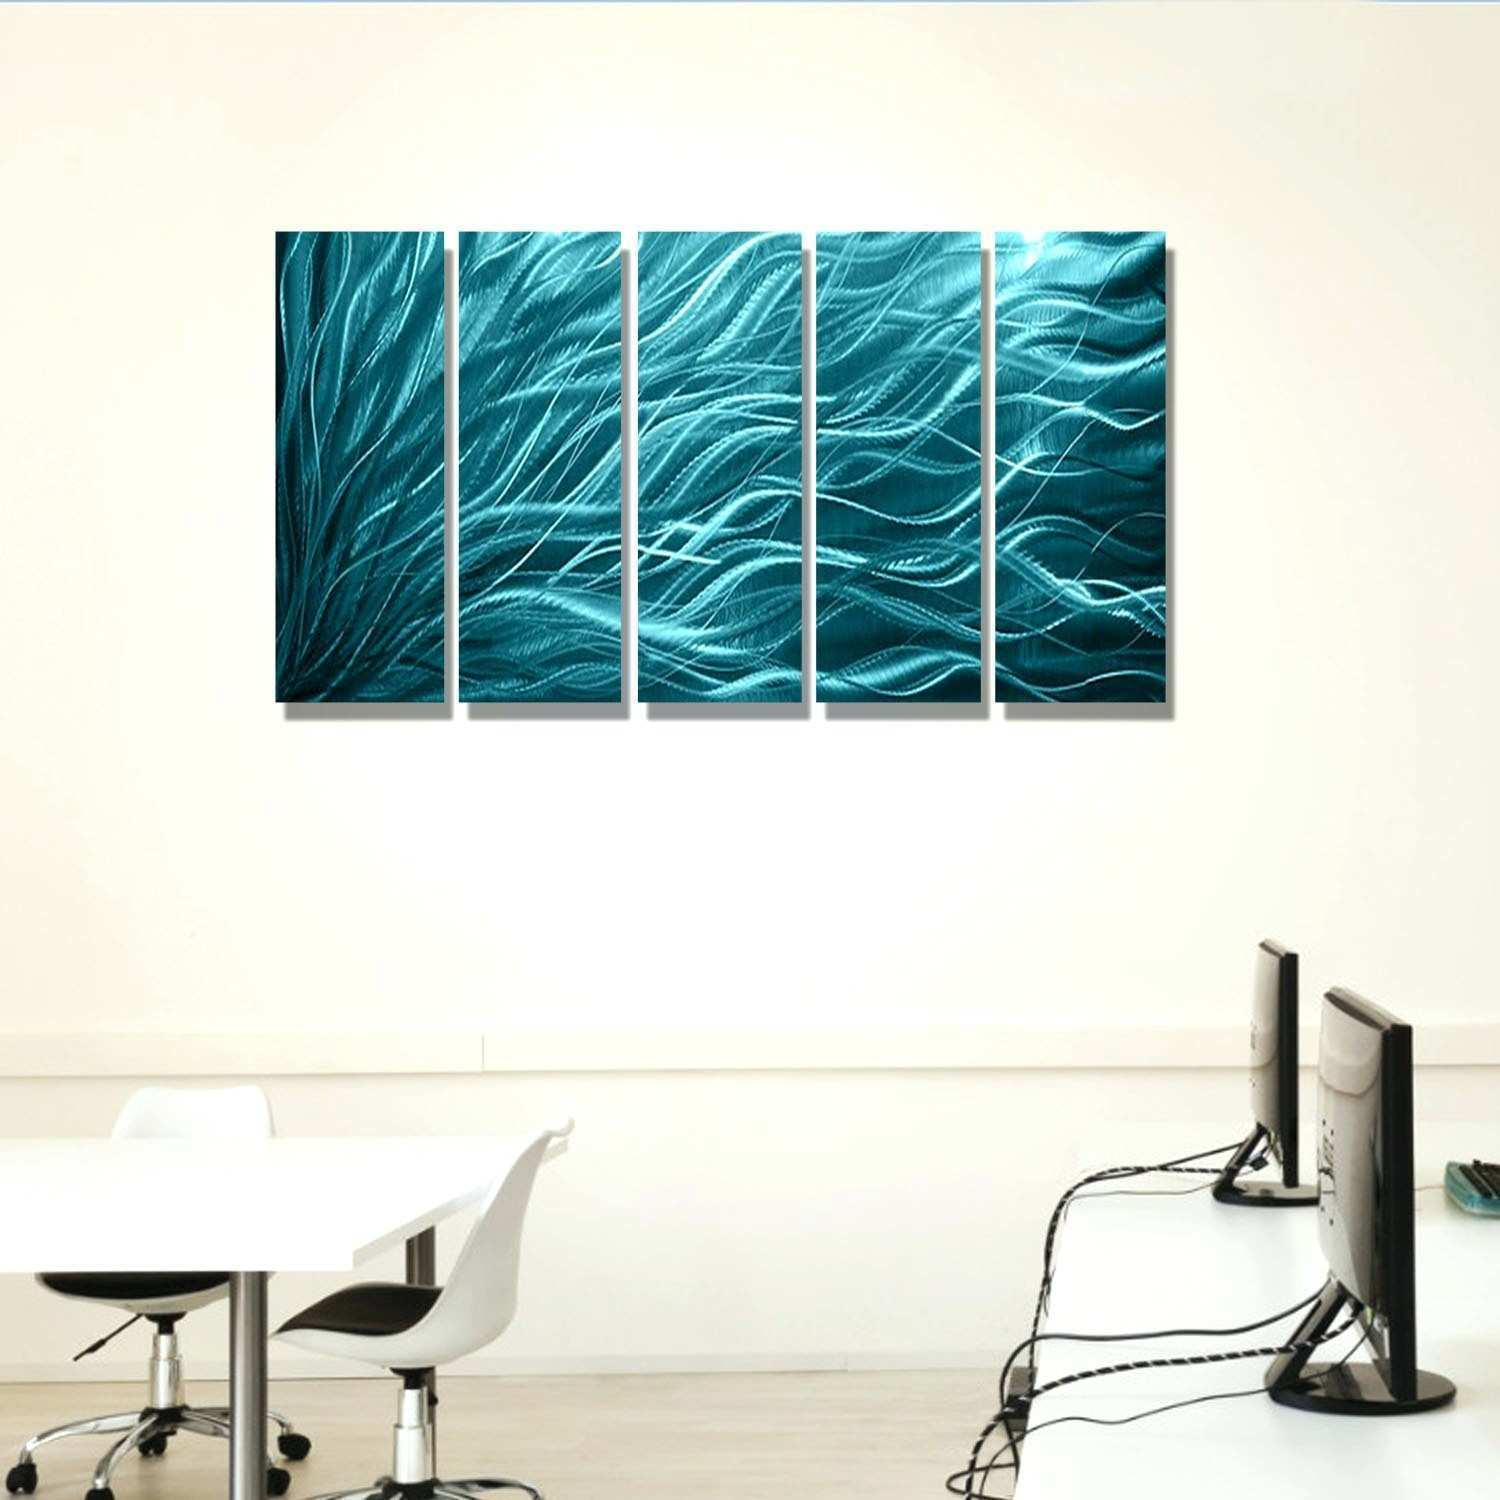 New Art Oil Painting Wall Decor Canvas